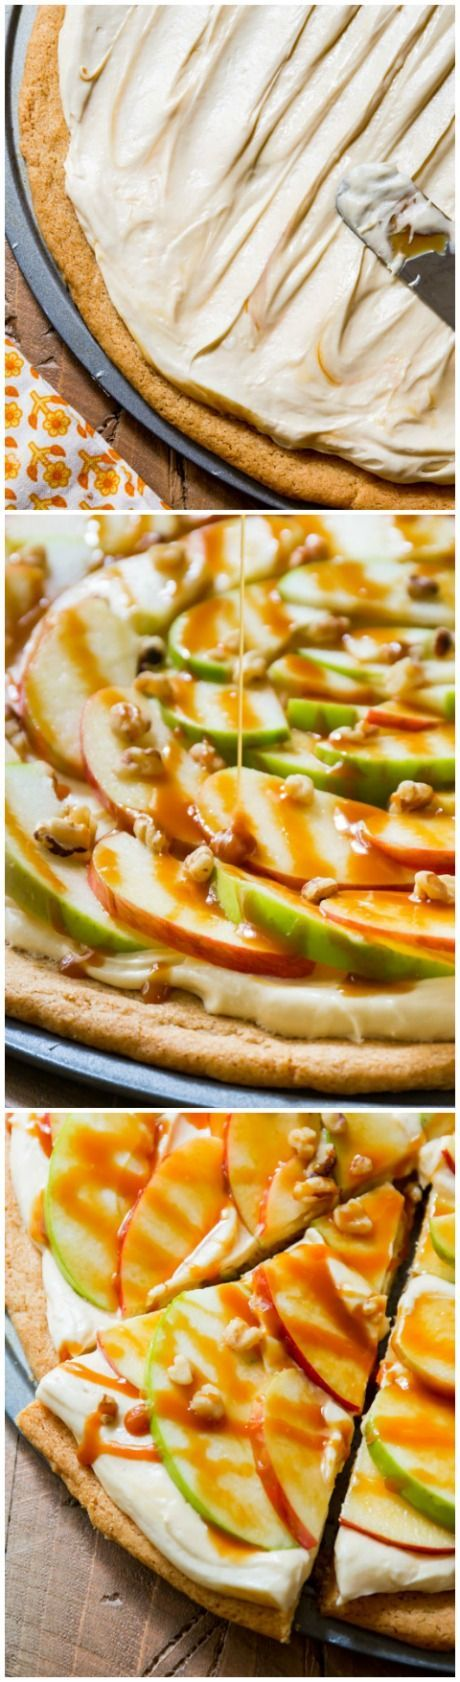 You won't believe how AMAZING this dessert pizza is! Caramel, cream cheese frosting, snickerdoodle cookie crust, and crunchy apples!